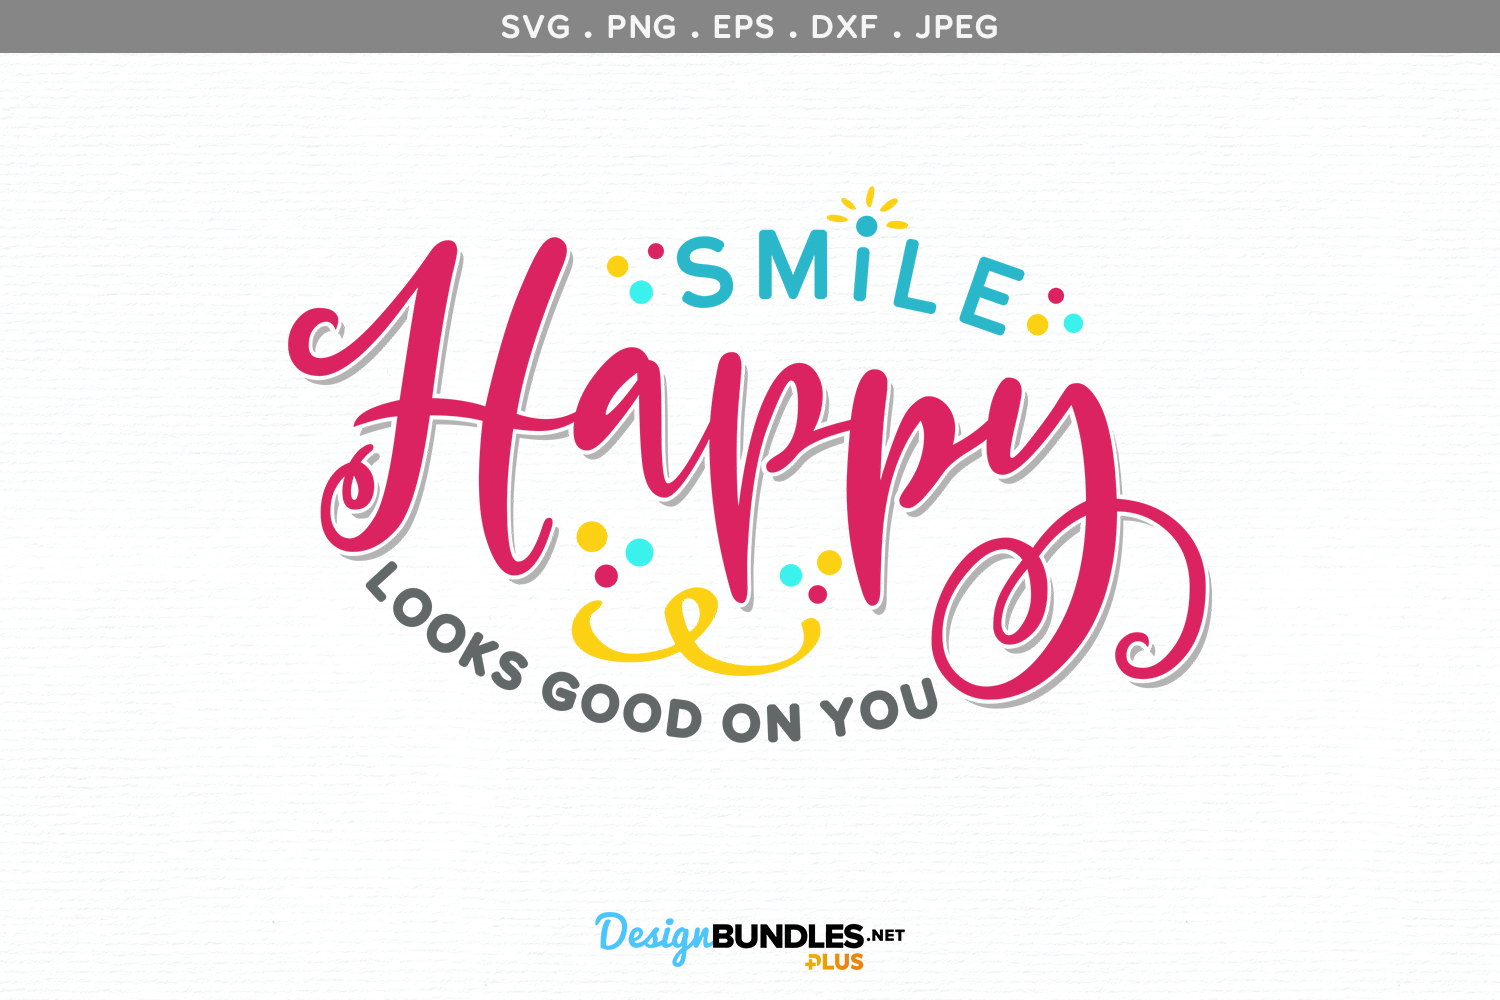 Smile, Happy Looks Good on You - svg cut file example image 2